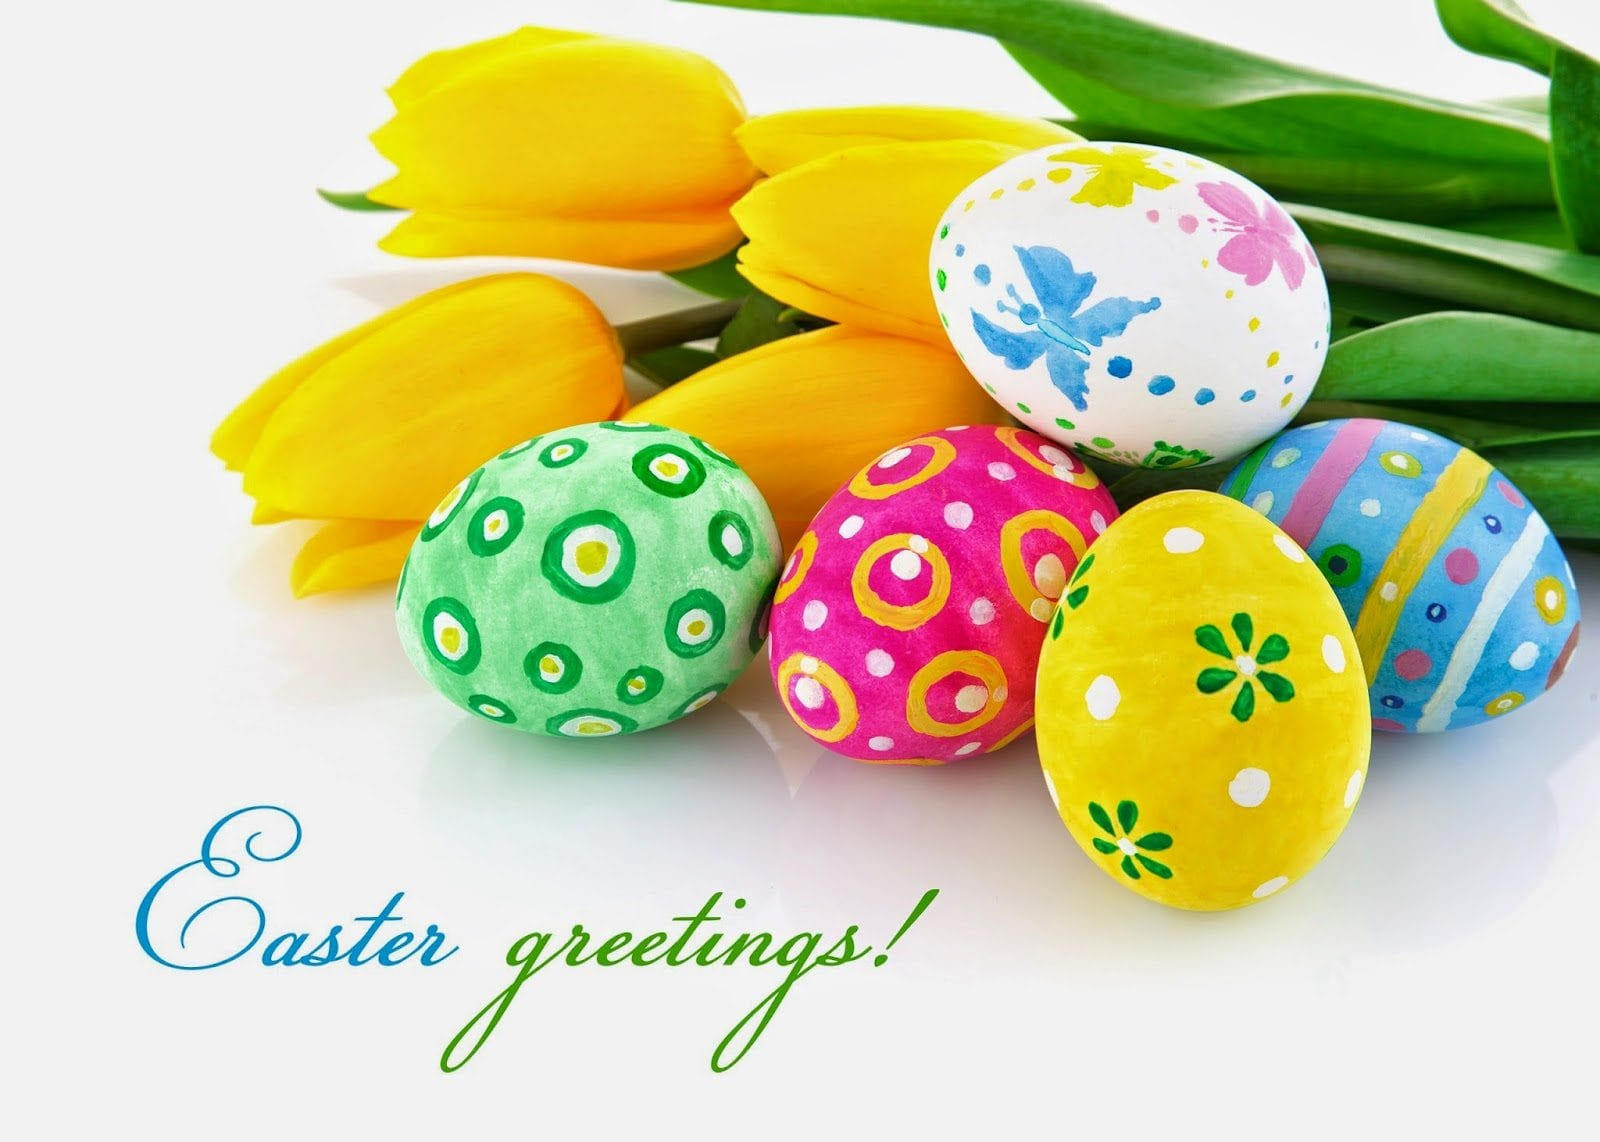 Best-Easter-HD-wallpaper-2015